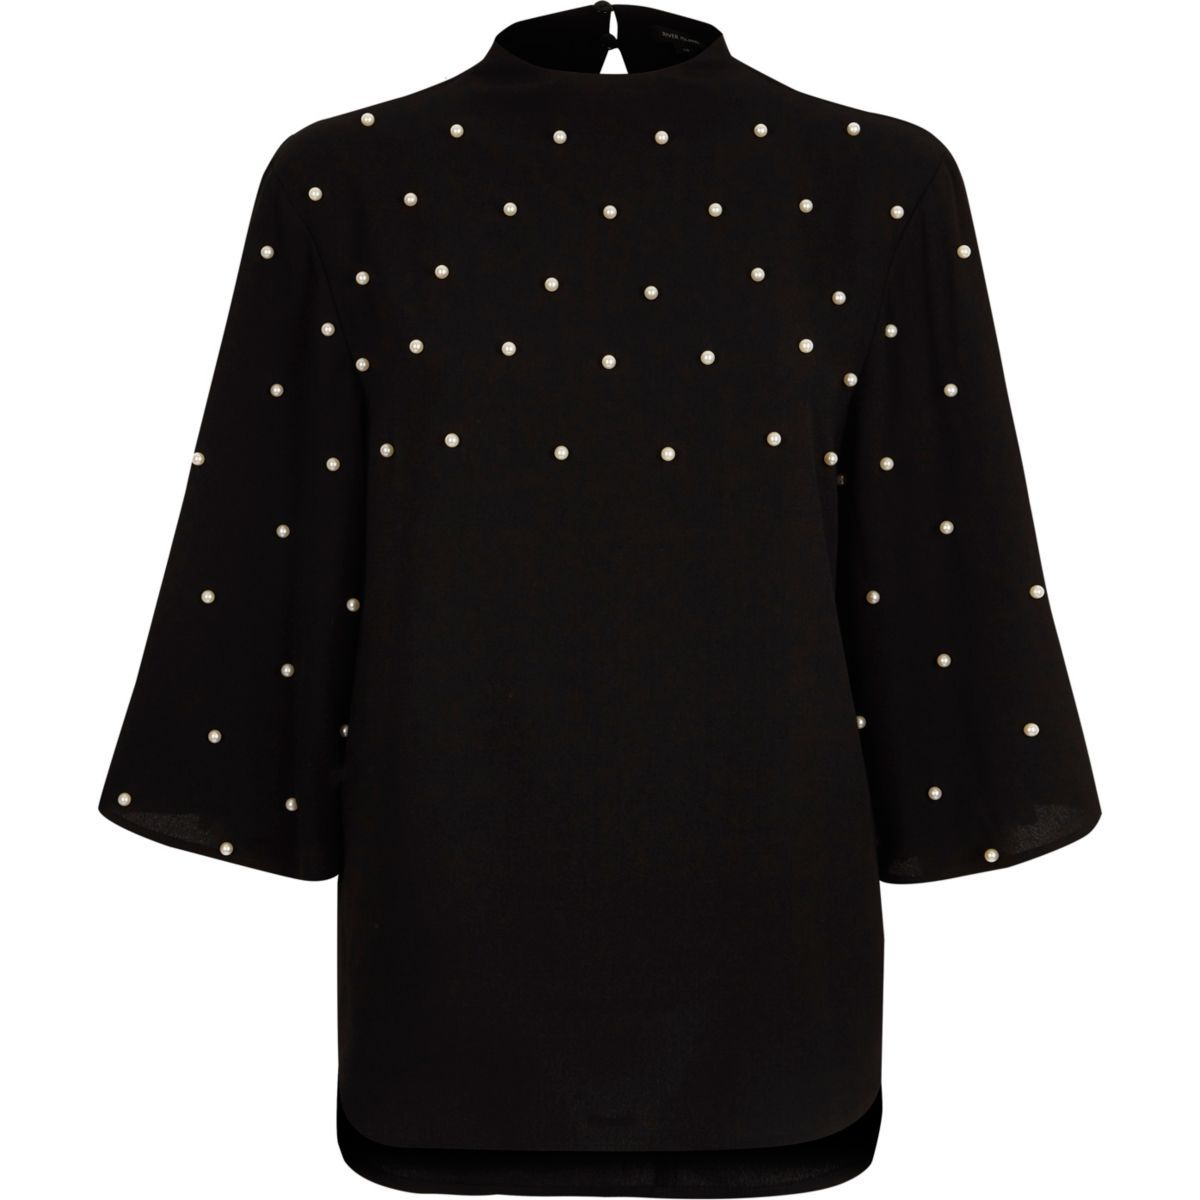 Black faux pearl high neck cape top wish list pinterest